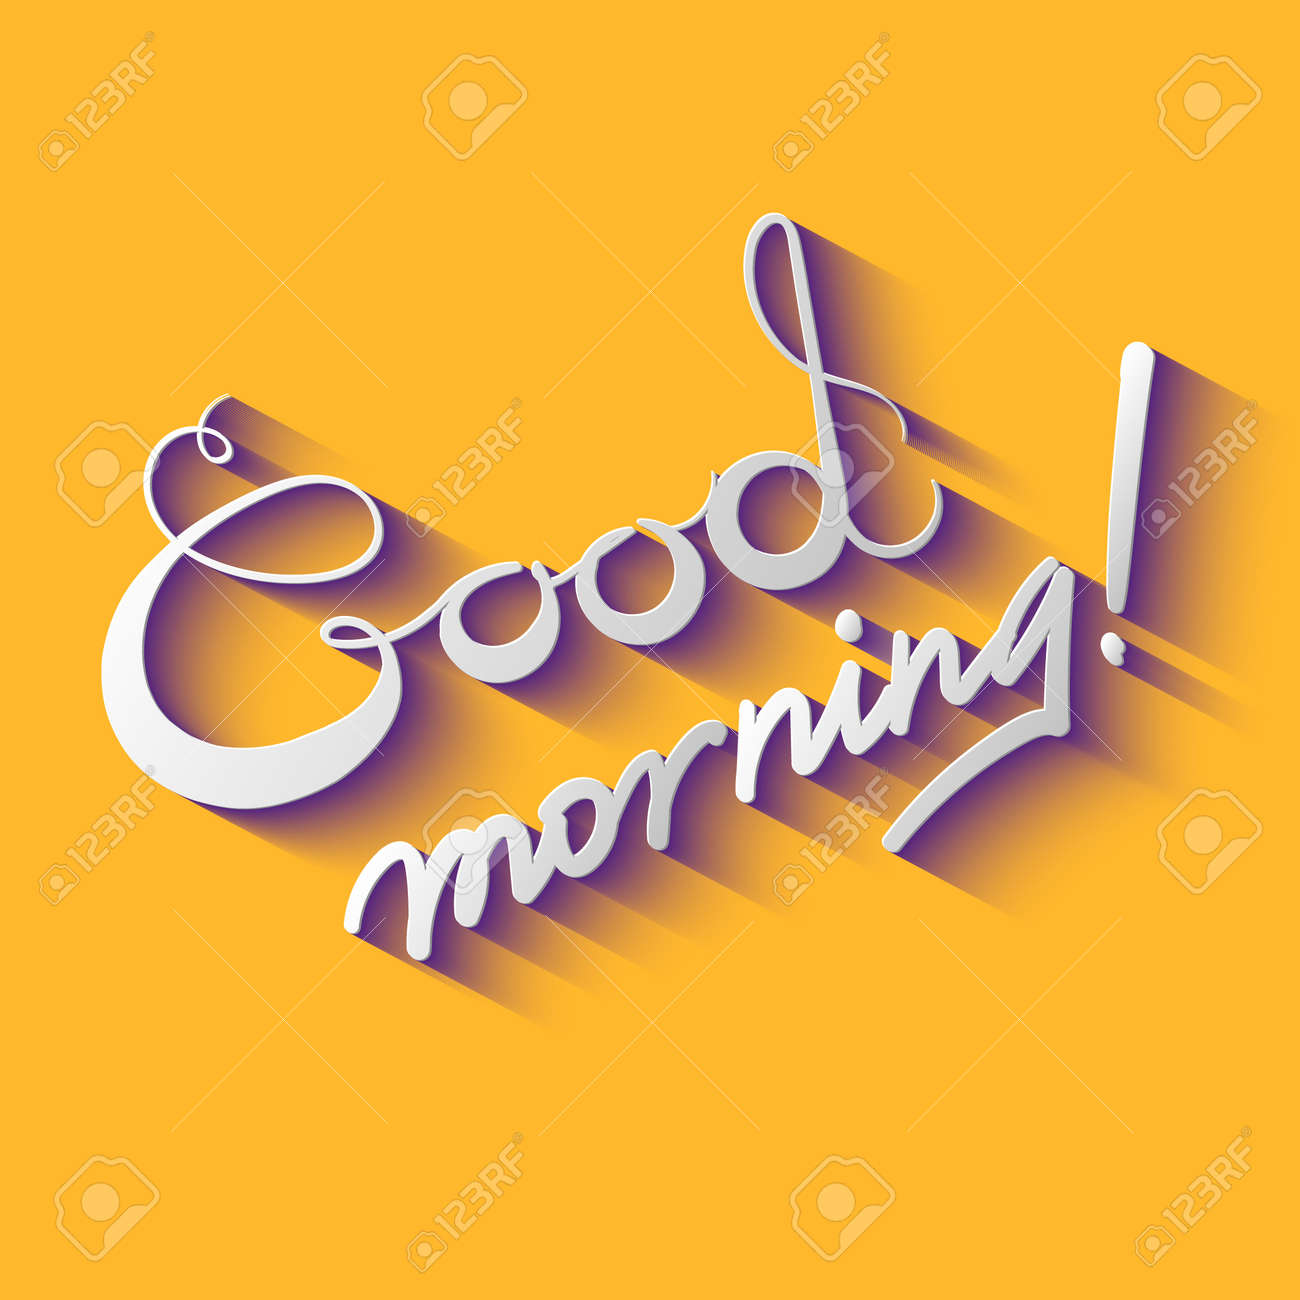 good morning vector design illustration royalty free cliparts